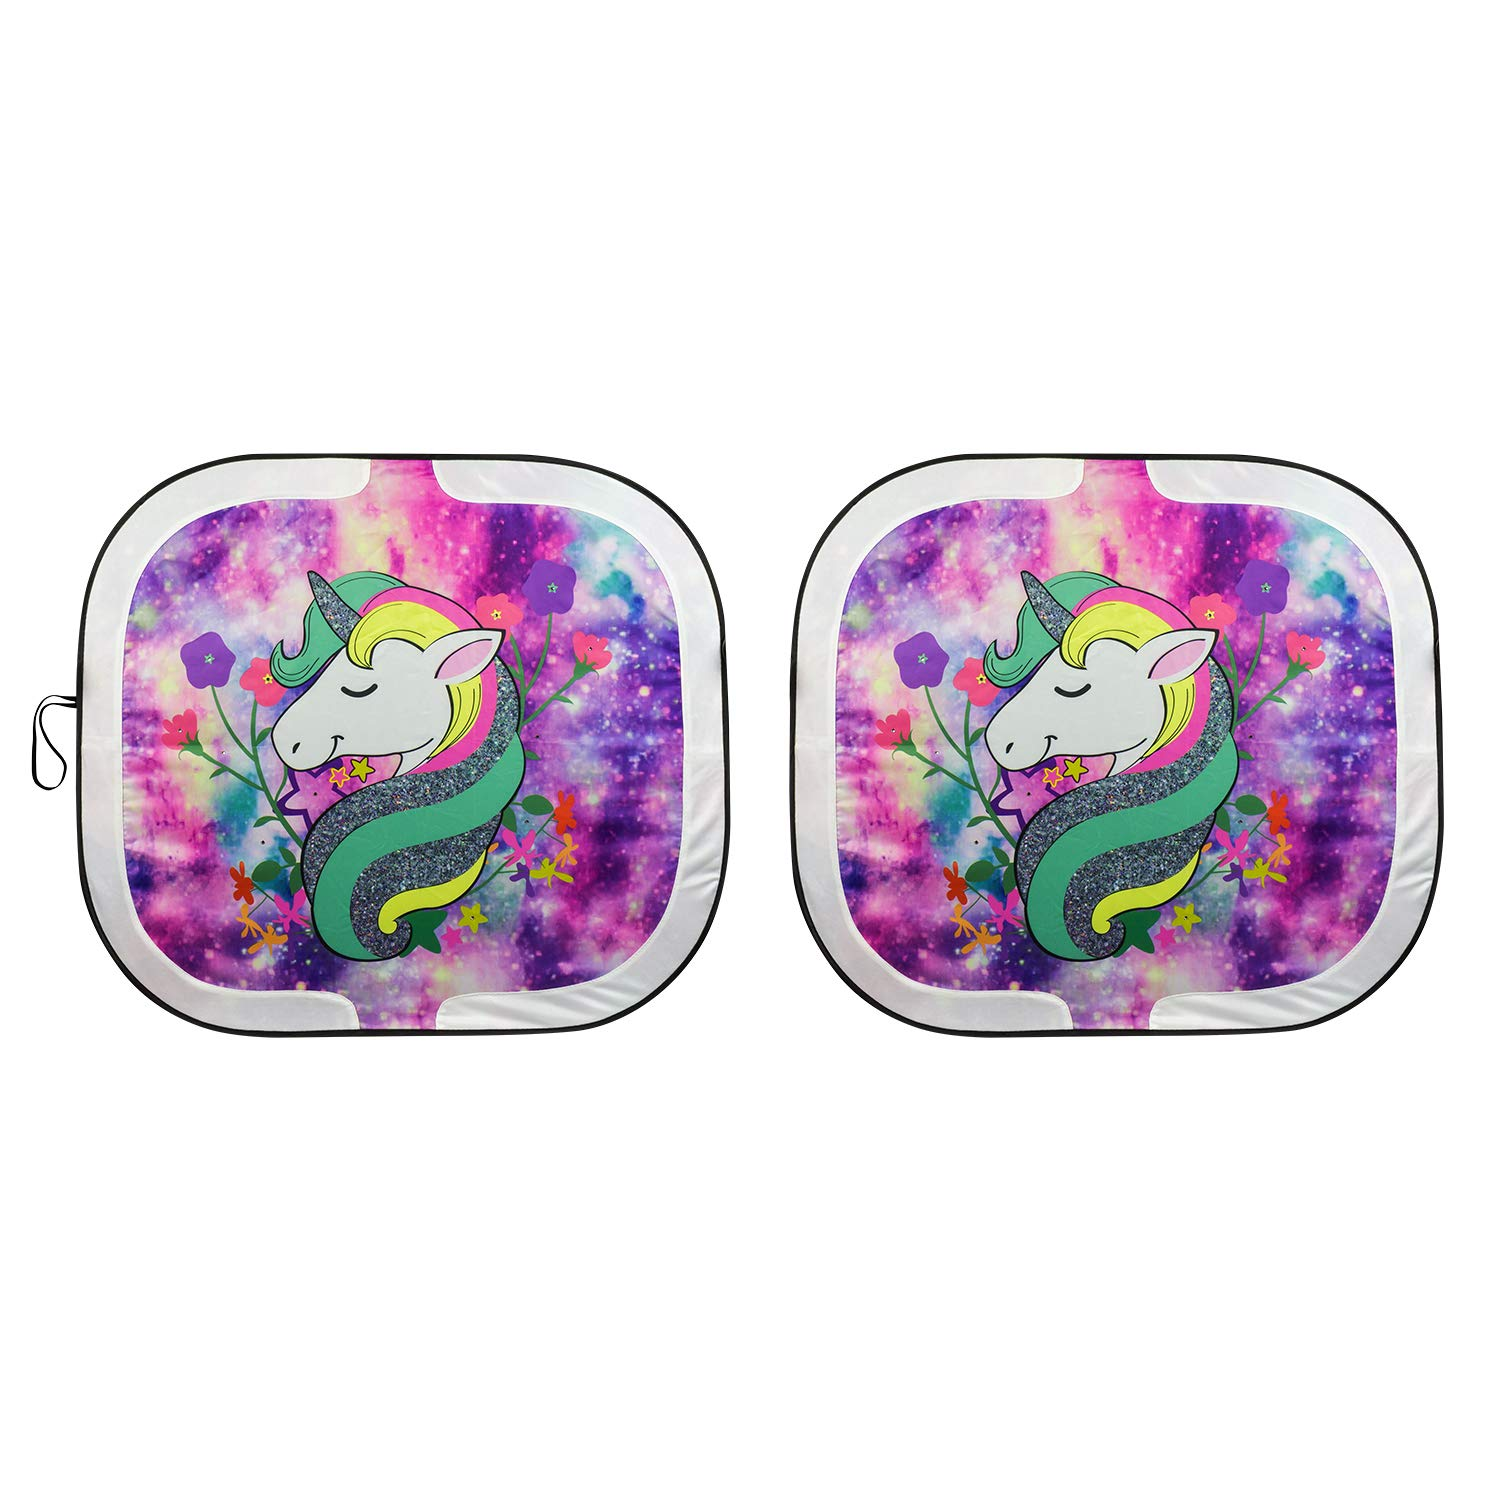 Special Edition Swarovski Crystal Embellished Collapsible Pilot Automotive SWR-0226 Unicorn Sunshade